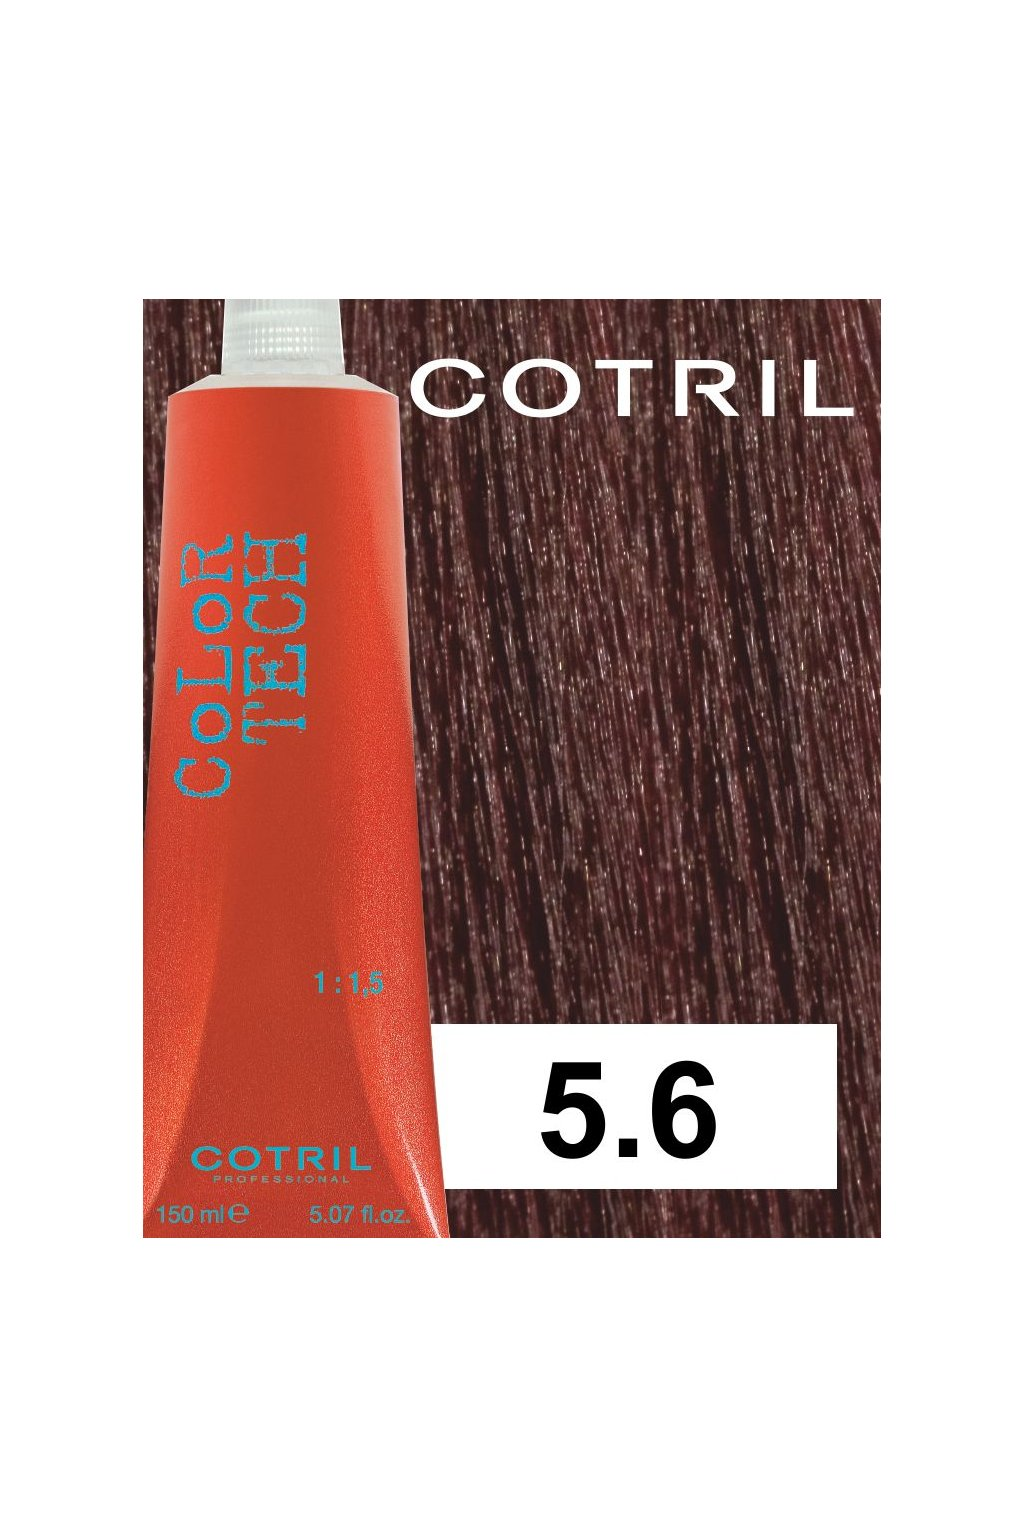 5 6 ct cotril